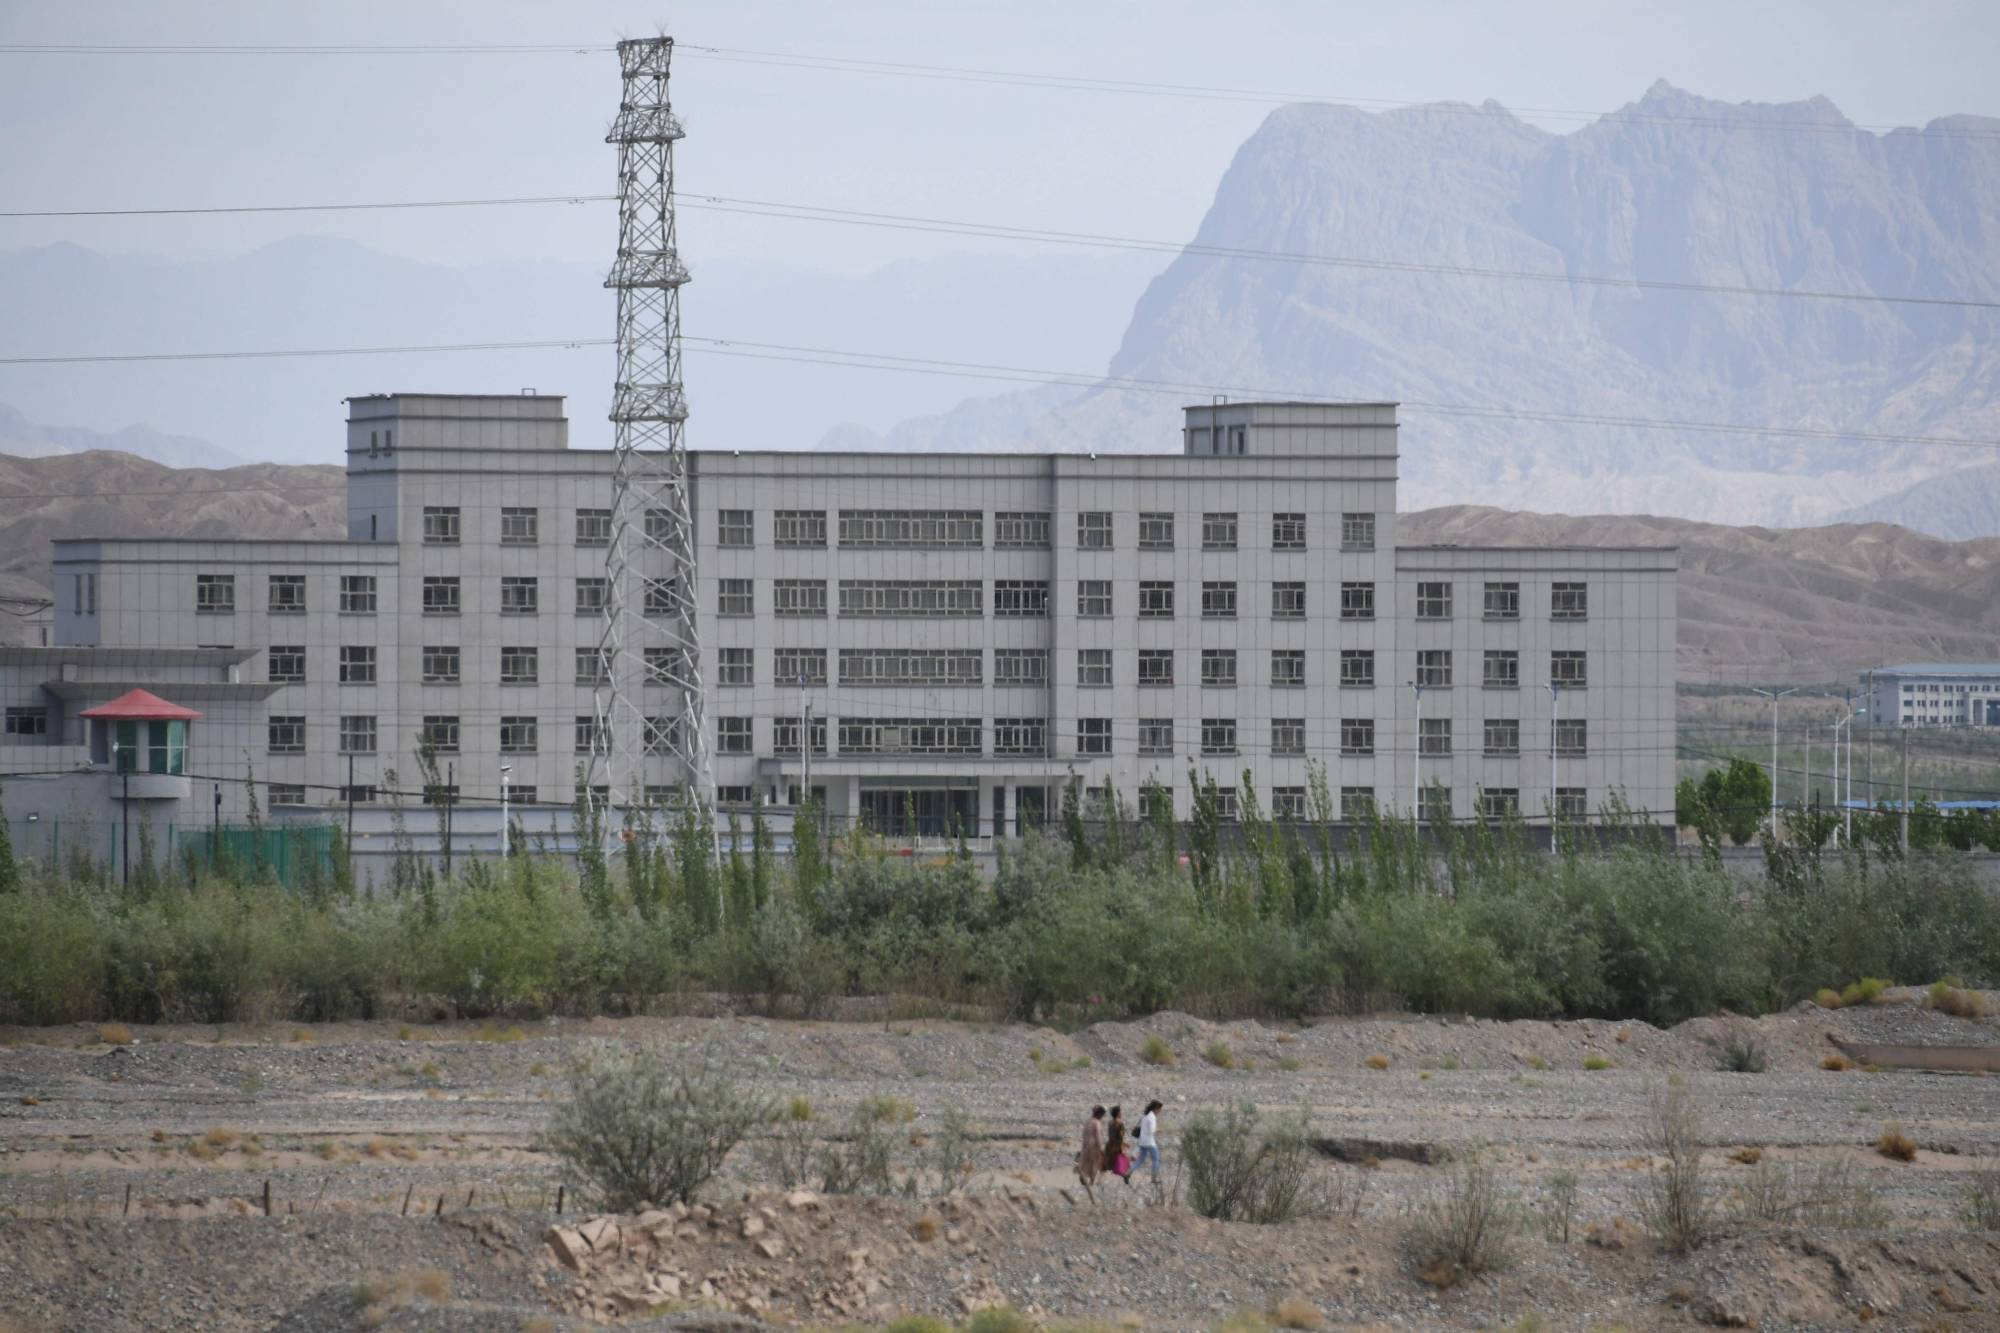 A facility believed to be a re-education camp where mostly Muslim ethnic minorities are detained, in Artux in China's western Xinjiang region | AFP-JIJI